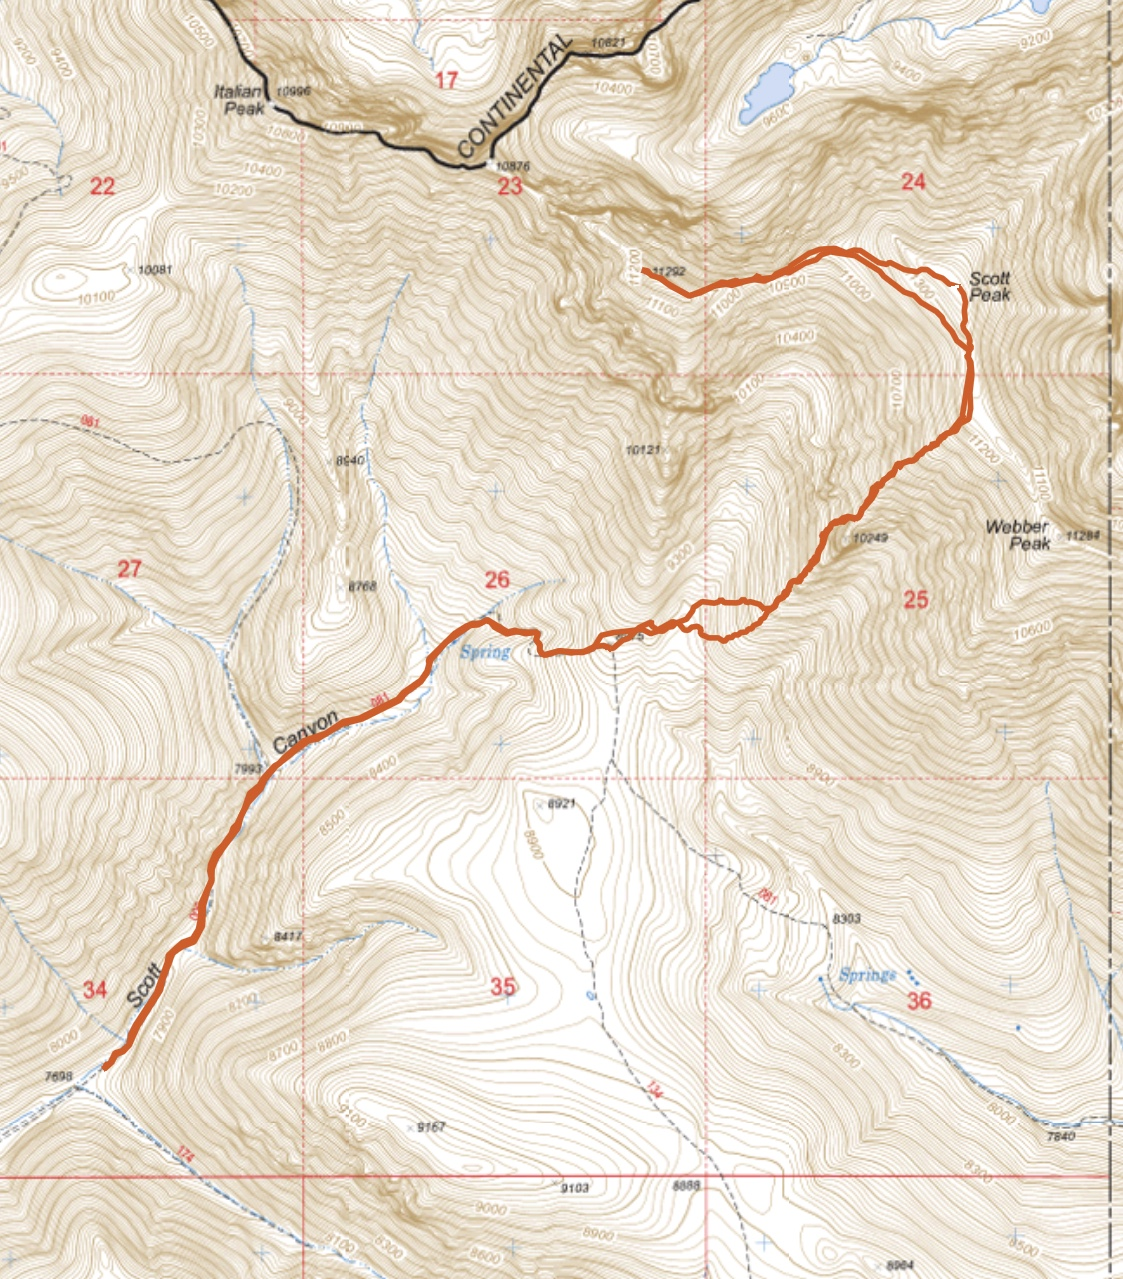 My GPS track for Scott Peak amd Huhs Horn. Round trip 8.8 miles with 4,315 of elevation gain.